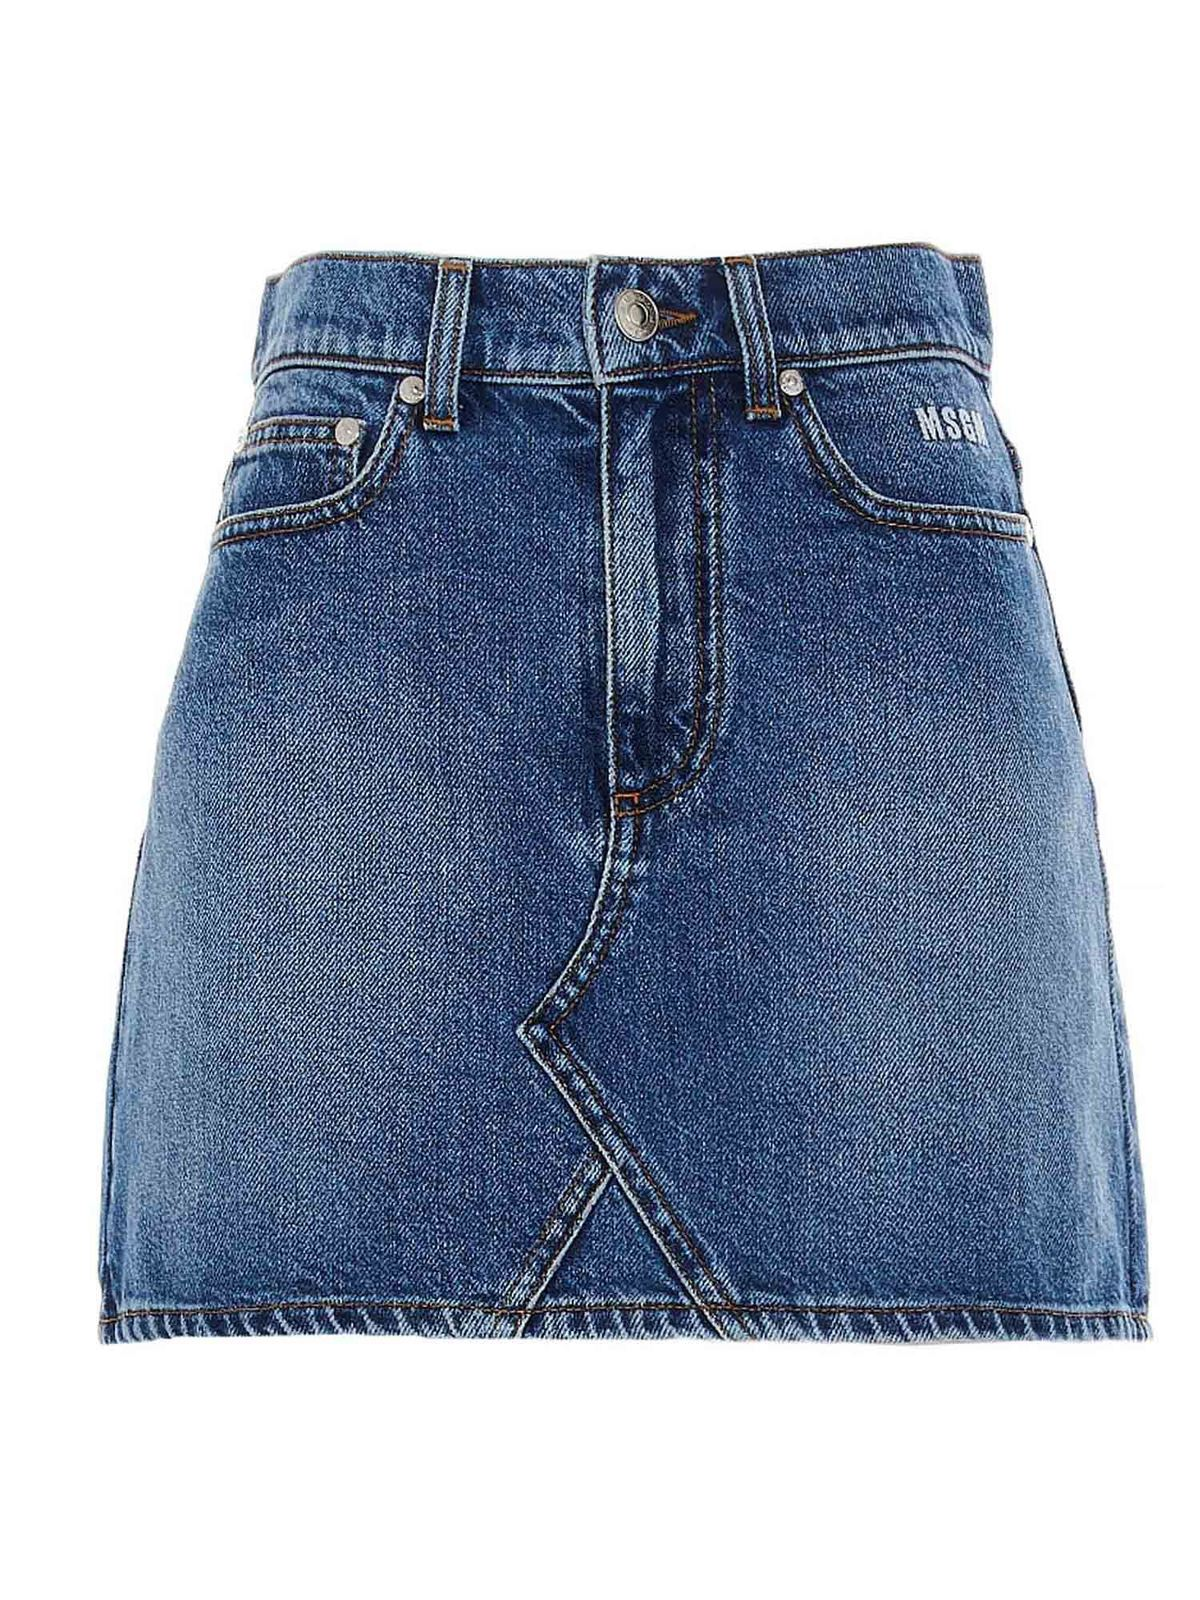 Msgm LOGO DENIM SKIRT IN BLUE